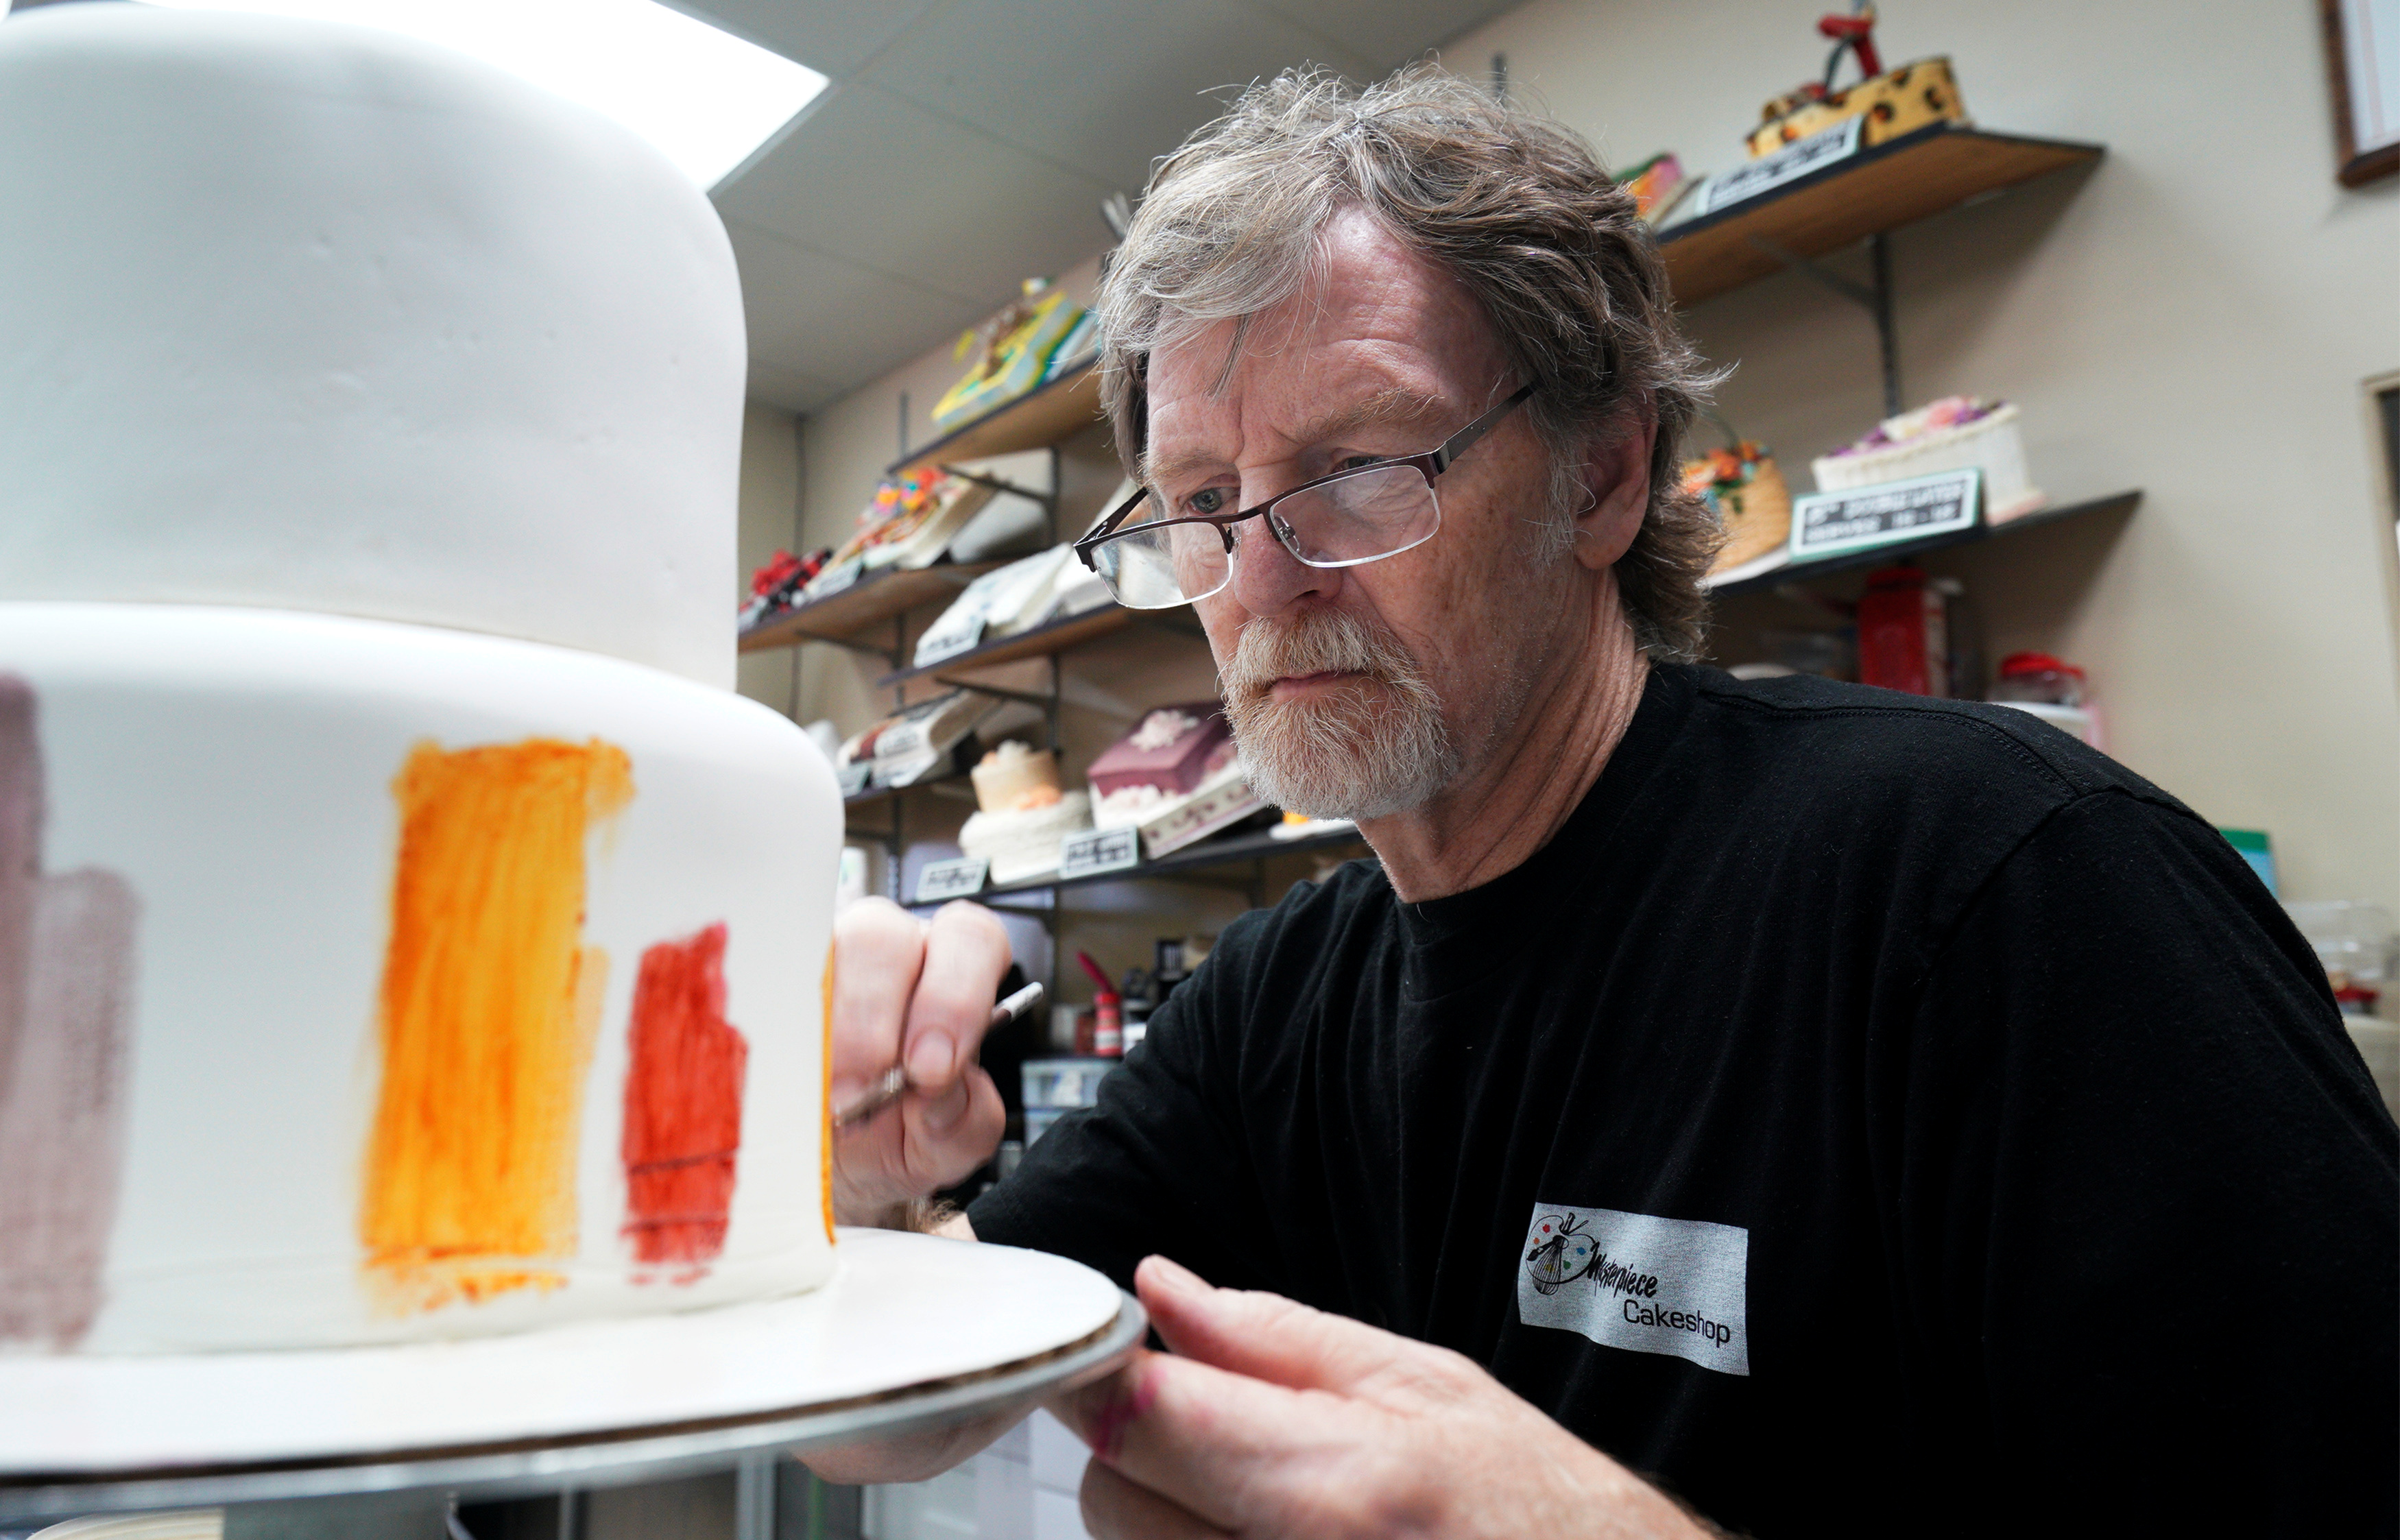 Baker Jack Phillips decorates a cake in his Masterpiece Cakeshop in Lakewood, Colorado September 21, 2017. REUTERS/Rick Wilking